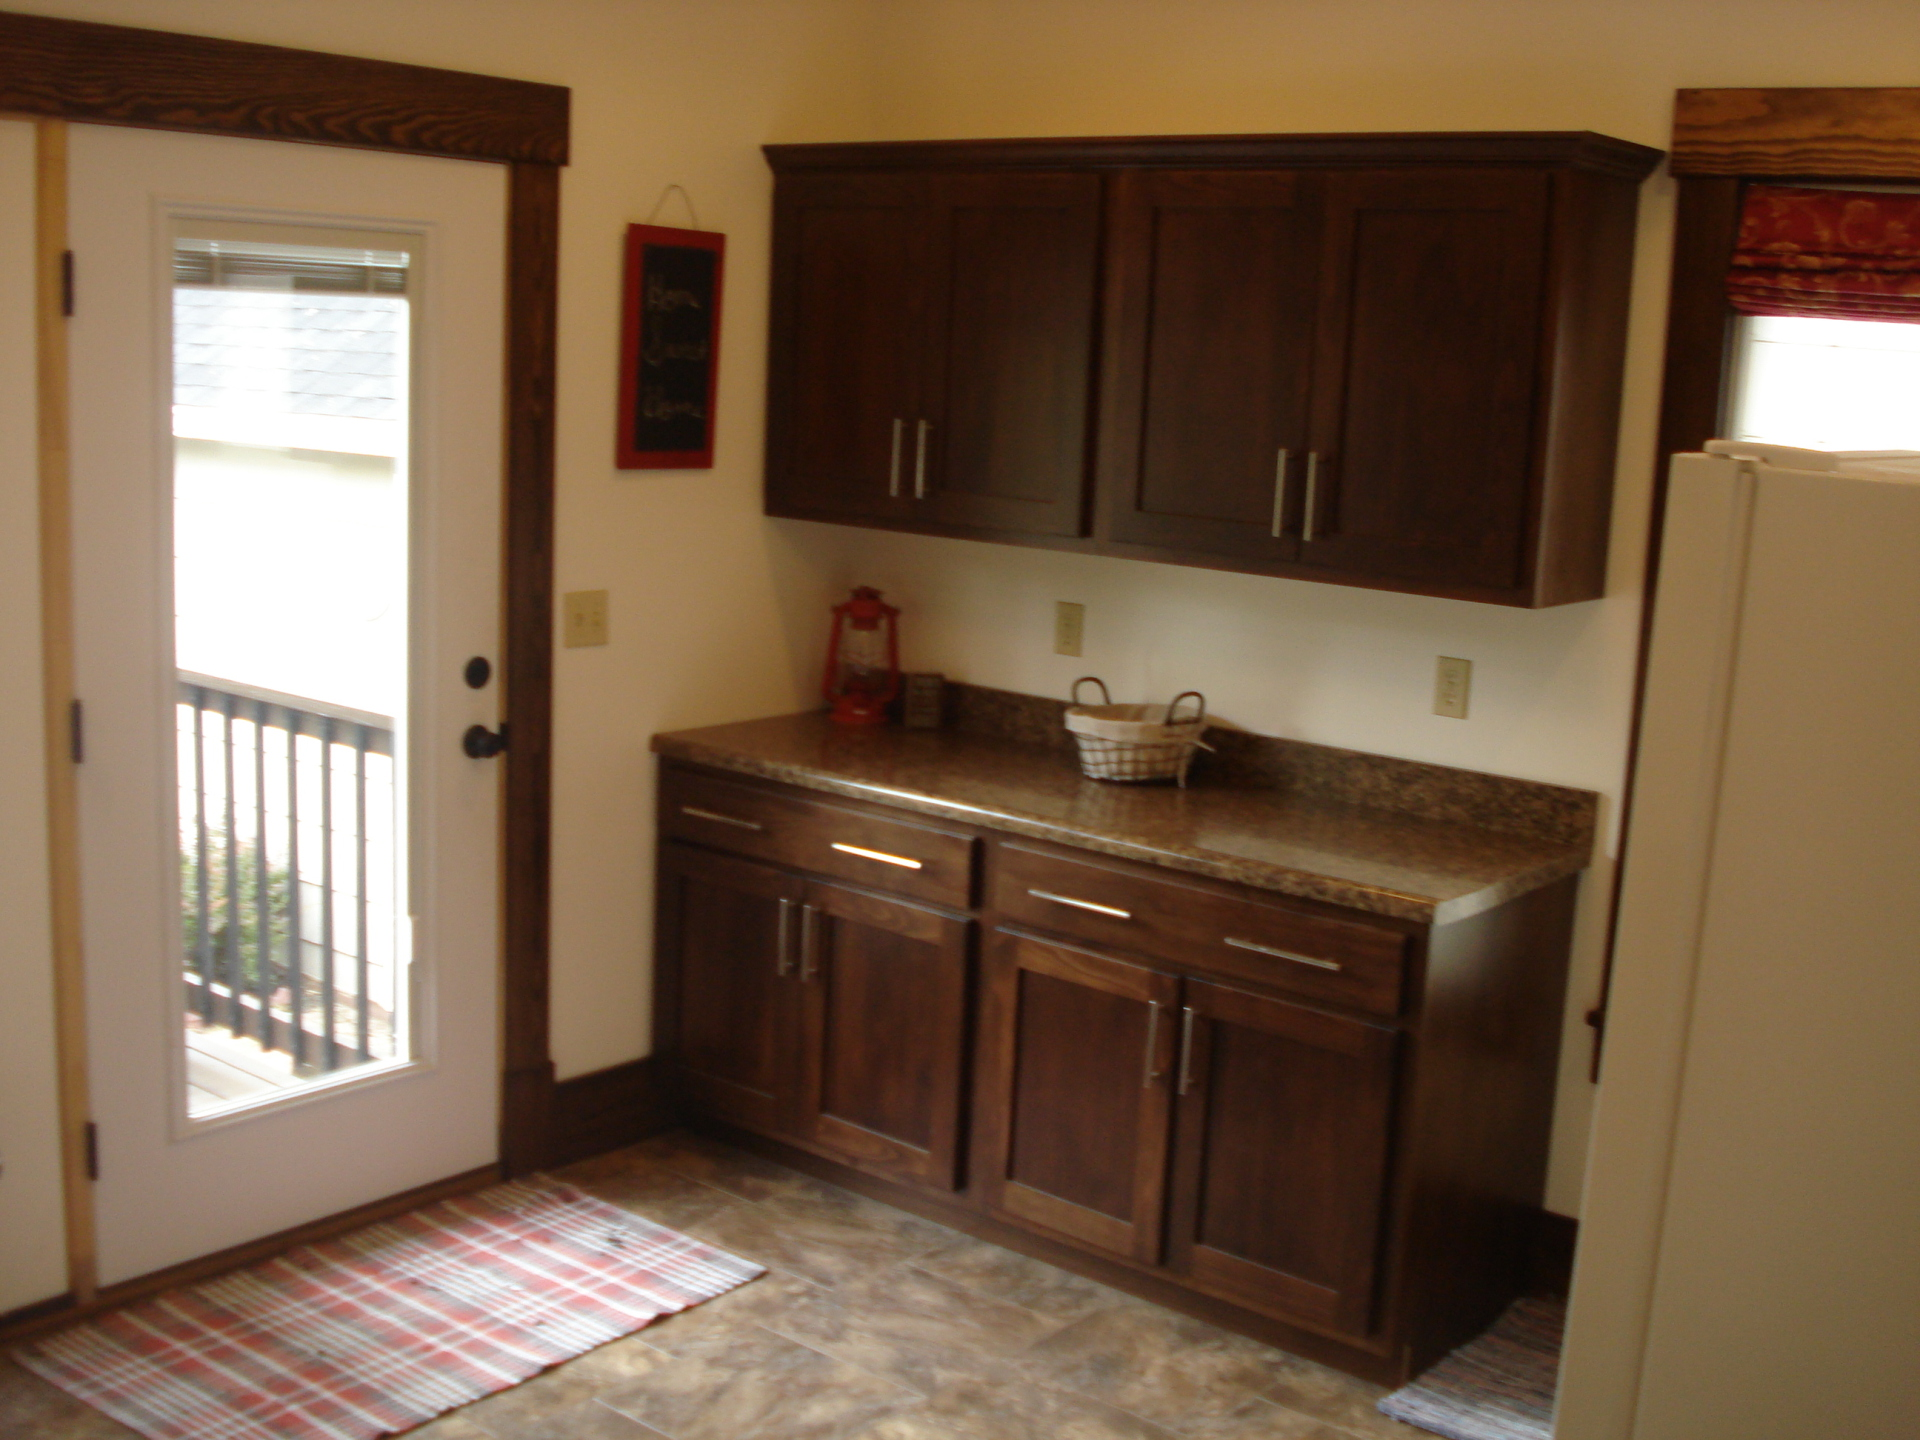 Pantry| house for sale| Linn| Kansas